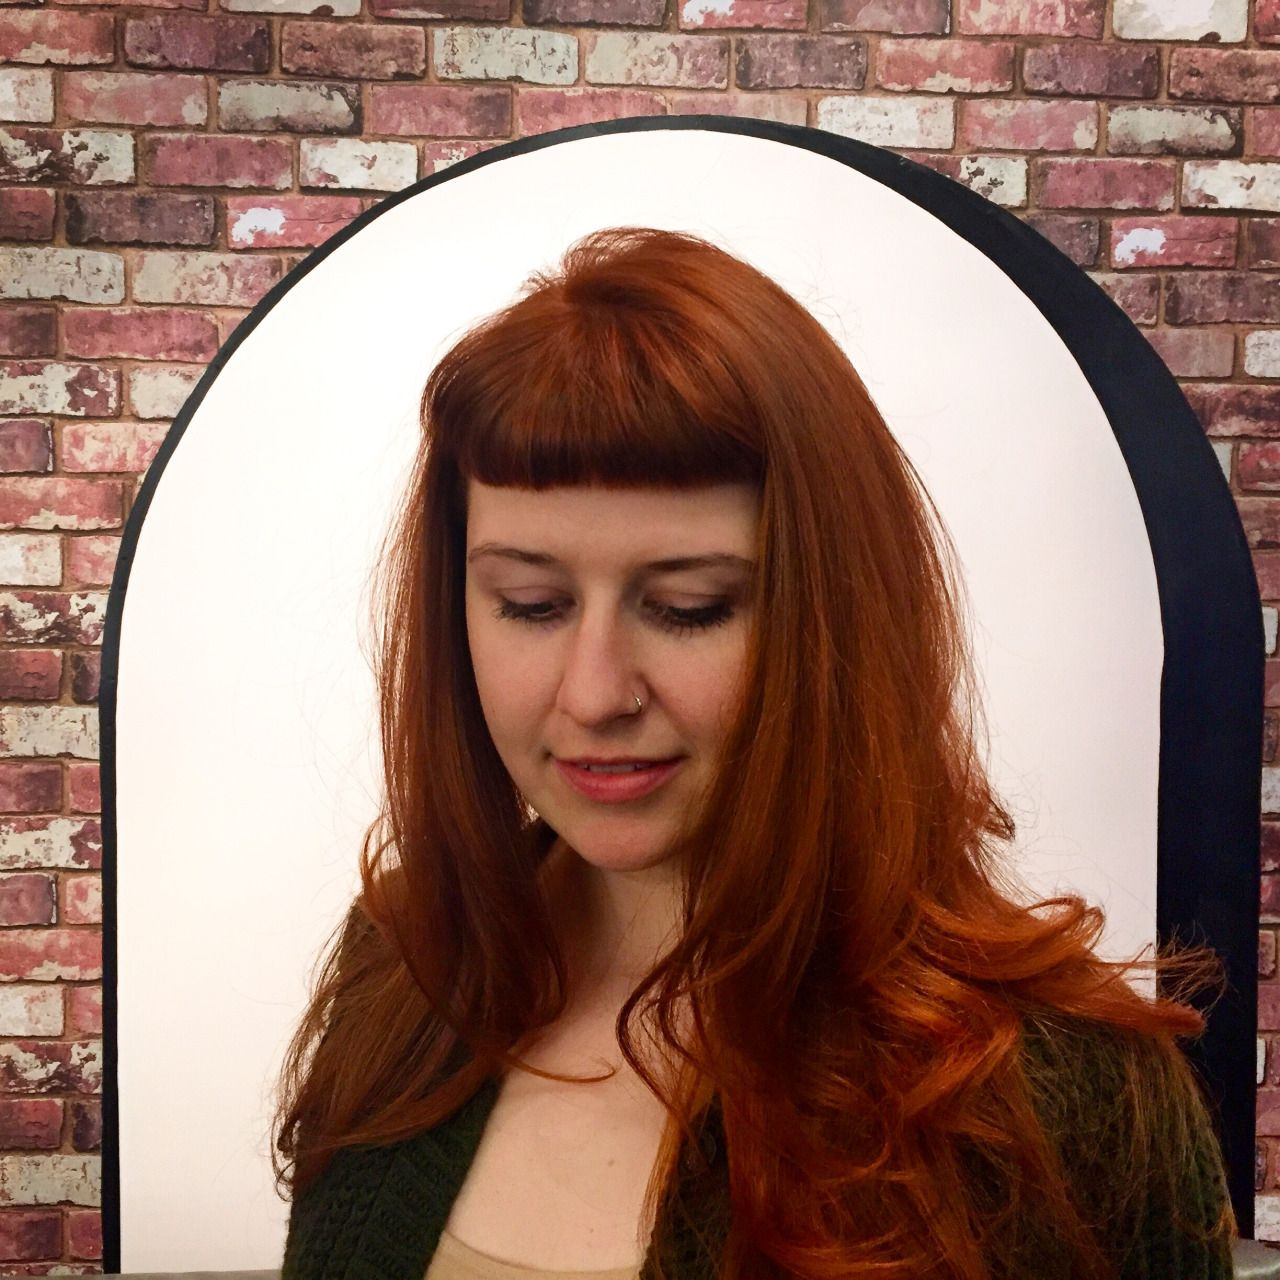 red hair color with bangs salon nyc 10023   Red hair   Pinterest ...